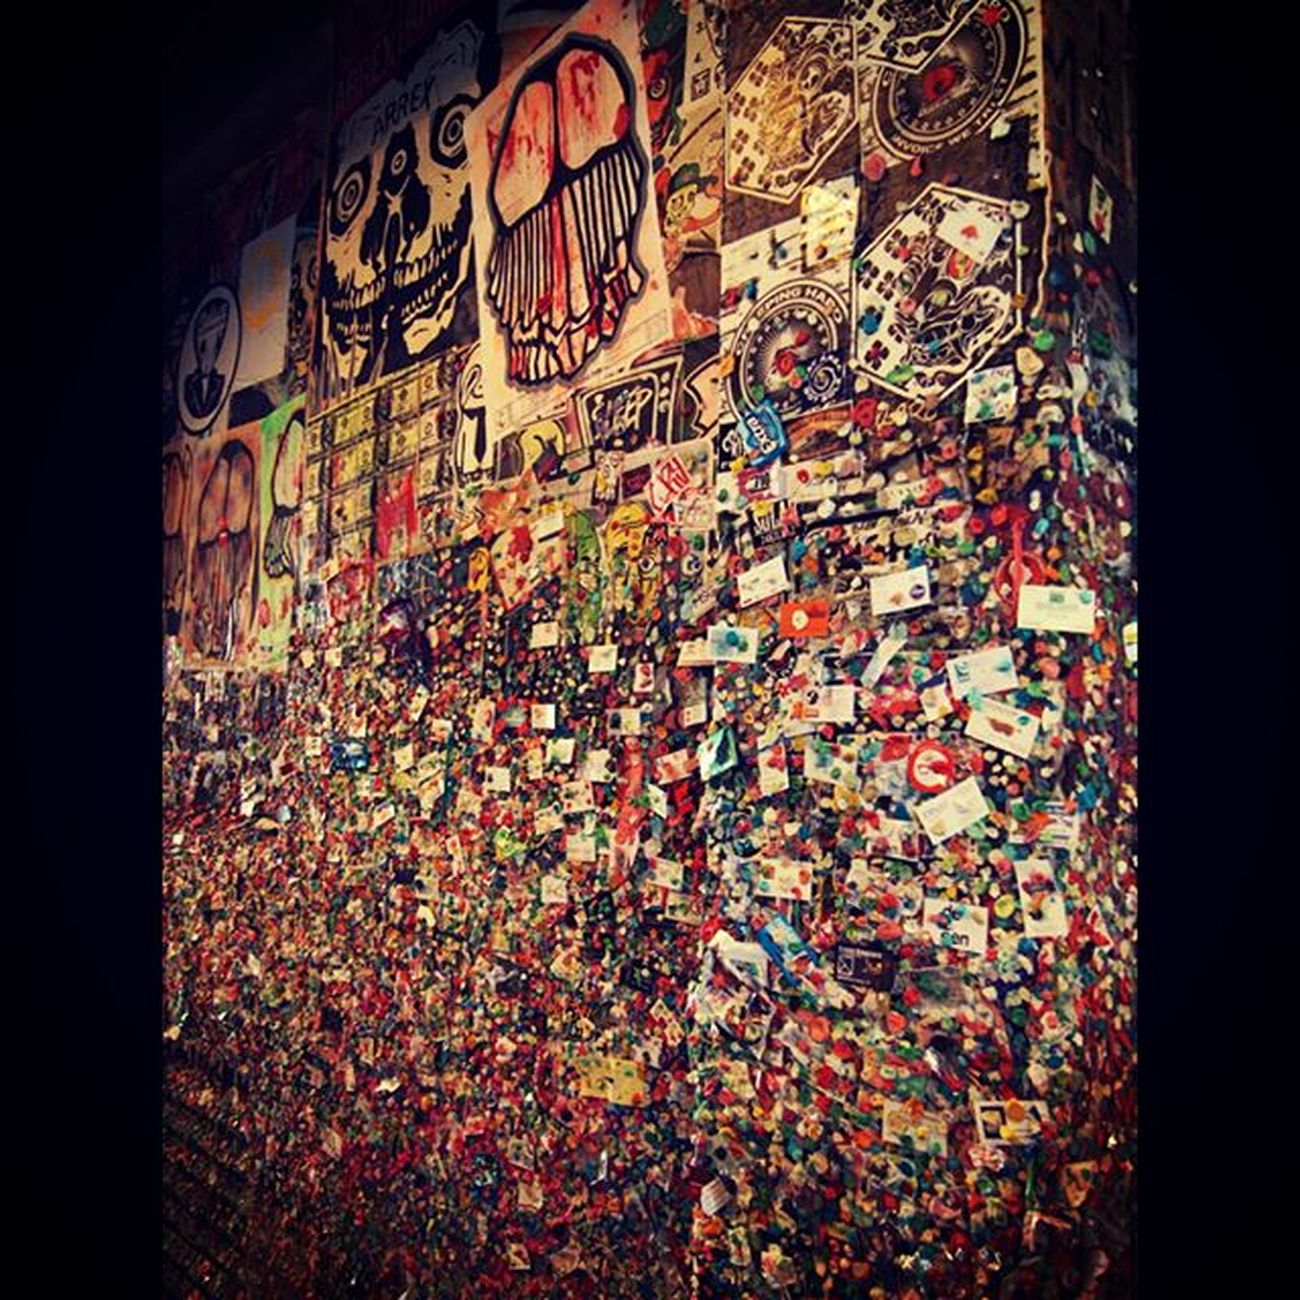 The Gum Wall in Seattle Seattle Gumwallseattle Gumwall Disgusting  Disgustingbutcool Exploreseattle Gum Travel Tavelgram Wanderlust Hiddengem LookButDontTouch Addyourown Tourist Daytrip Seattledaytrip